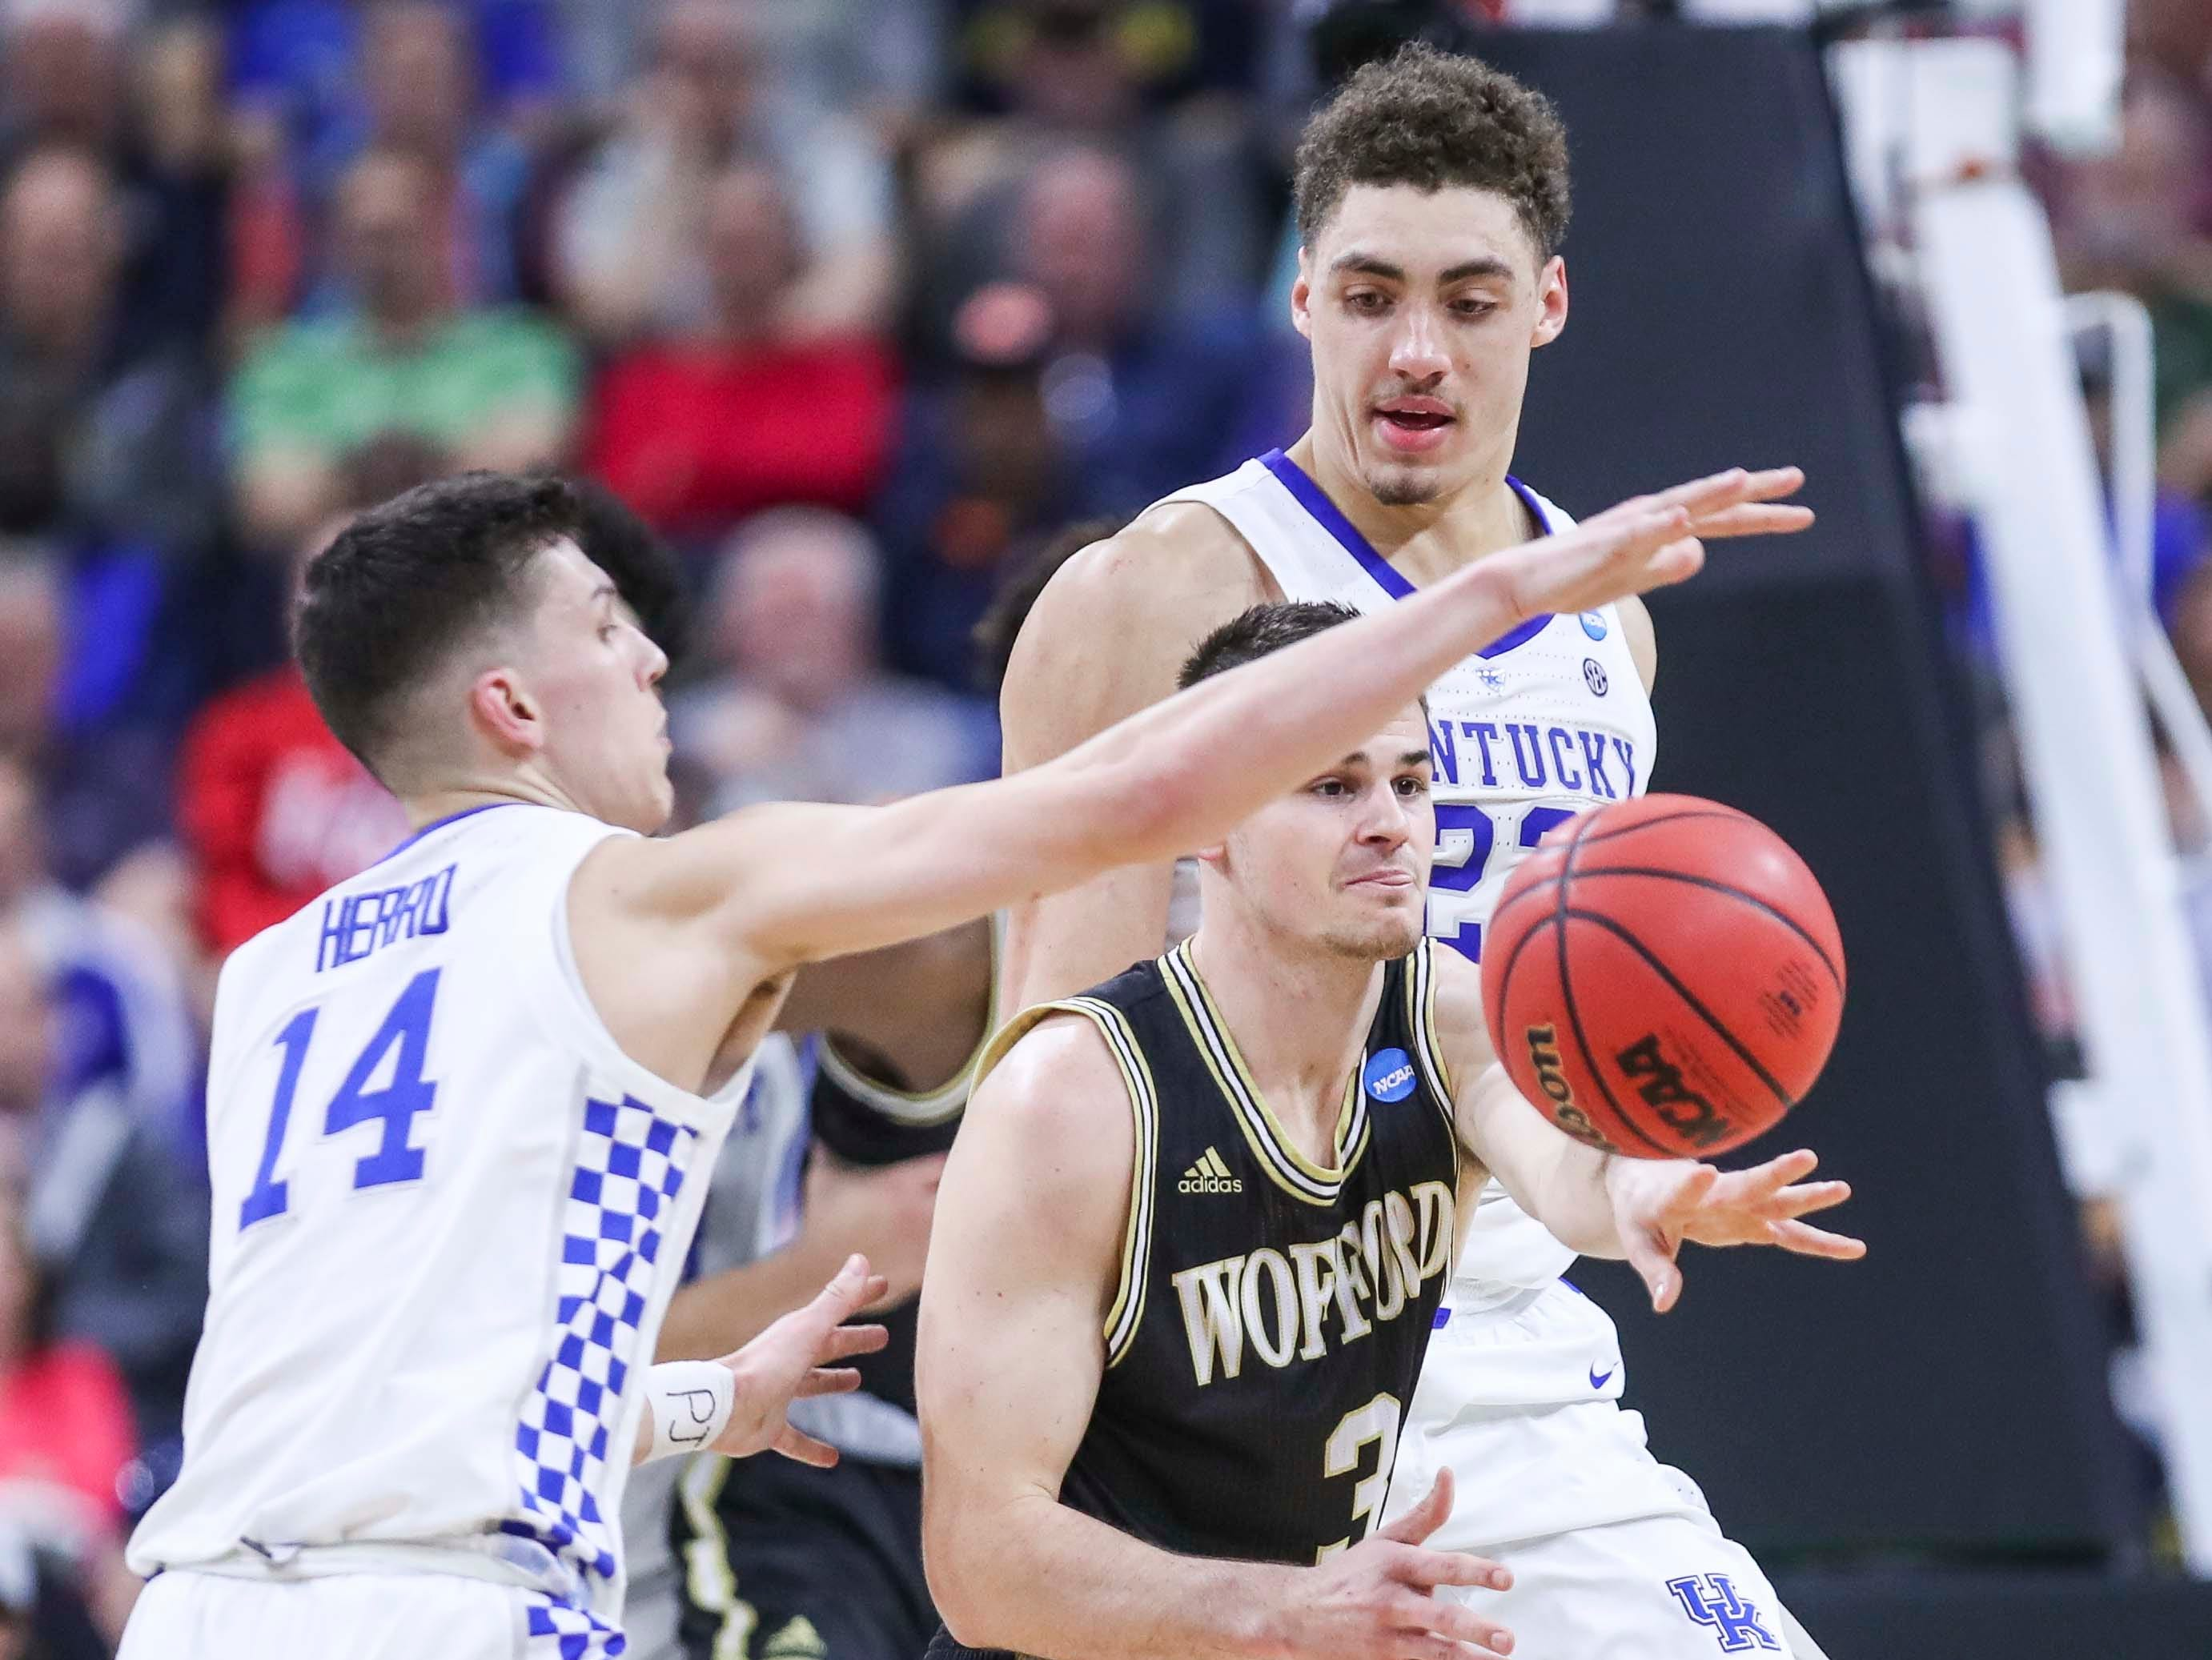 Kentucky's Tyler Herro pressures Wofford's Fletcher Magee as the Wildcats muscled its way past a tenacious Wofford 62-56 in the second round game of the 2019 NCAA tournament in Jacksonville, Fla. March 23, 2019